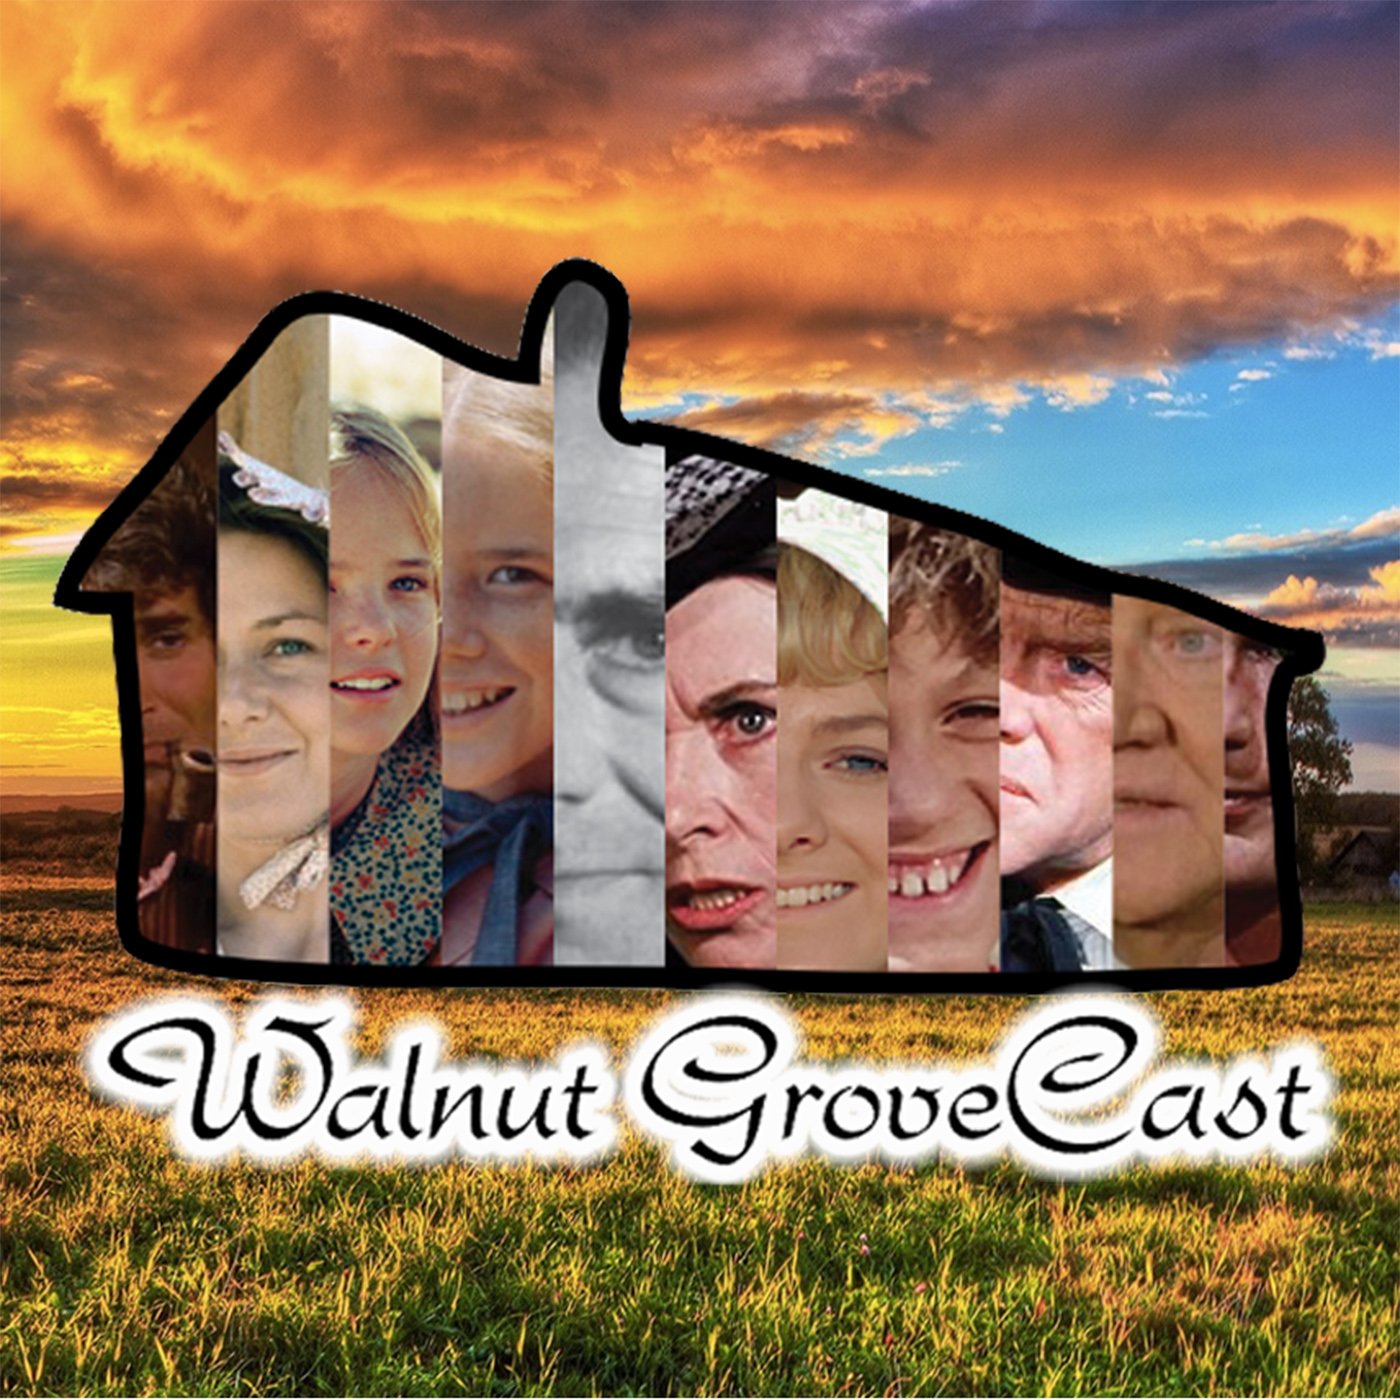 The Little House on the Prairie Podcast: Walnut GroveCast